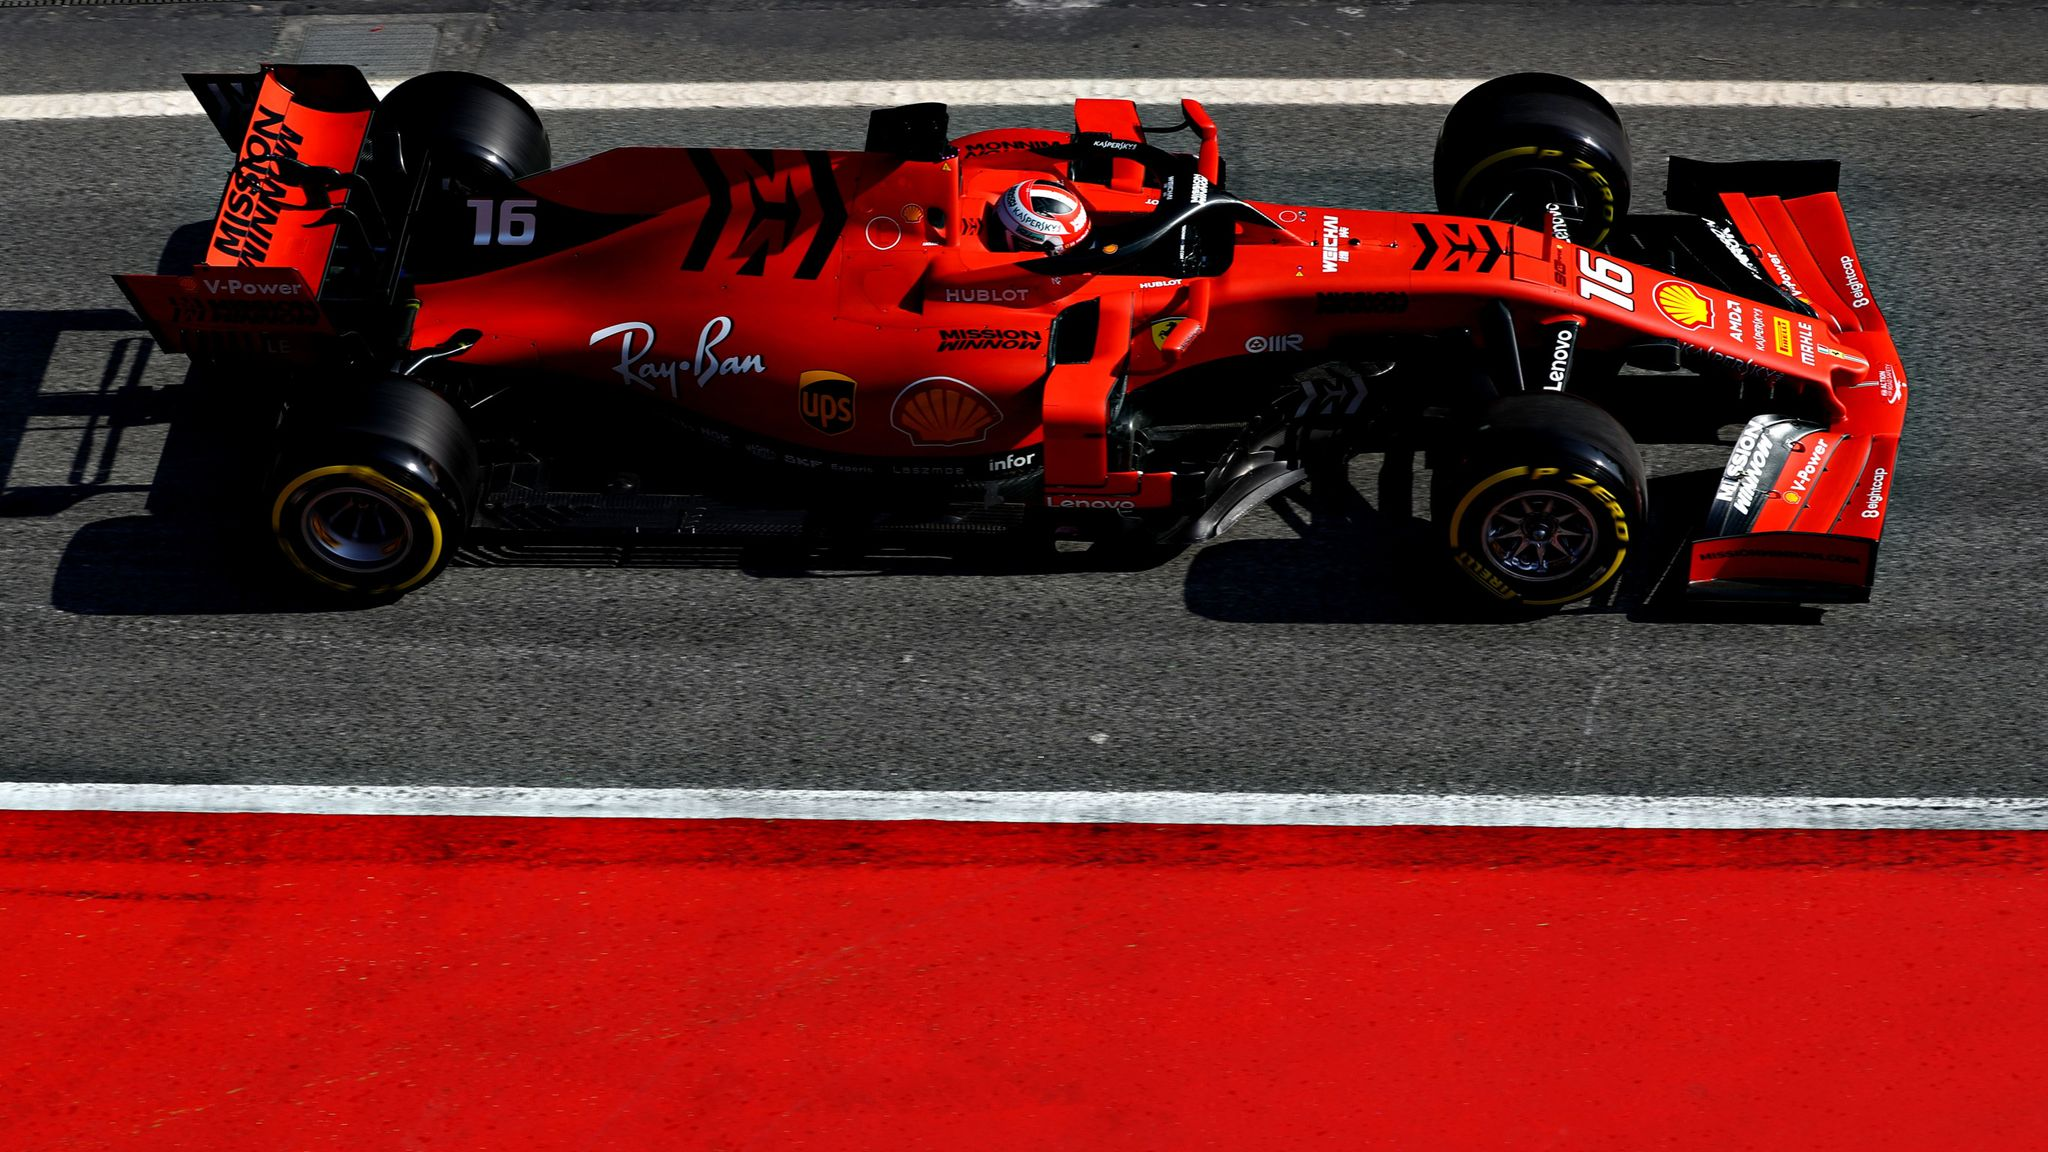 Ferrari expect 'very close' battle with Mercedes at start of F1 2019